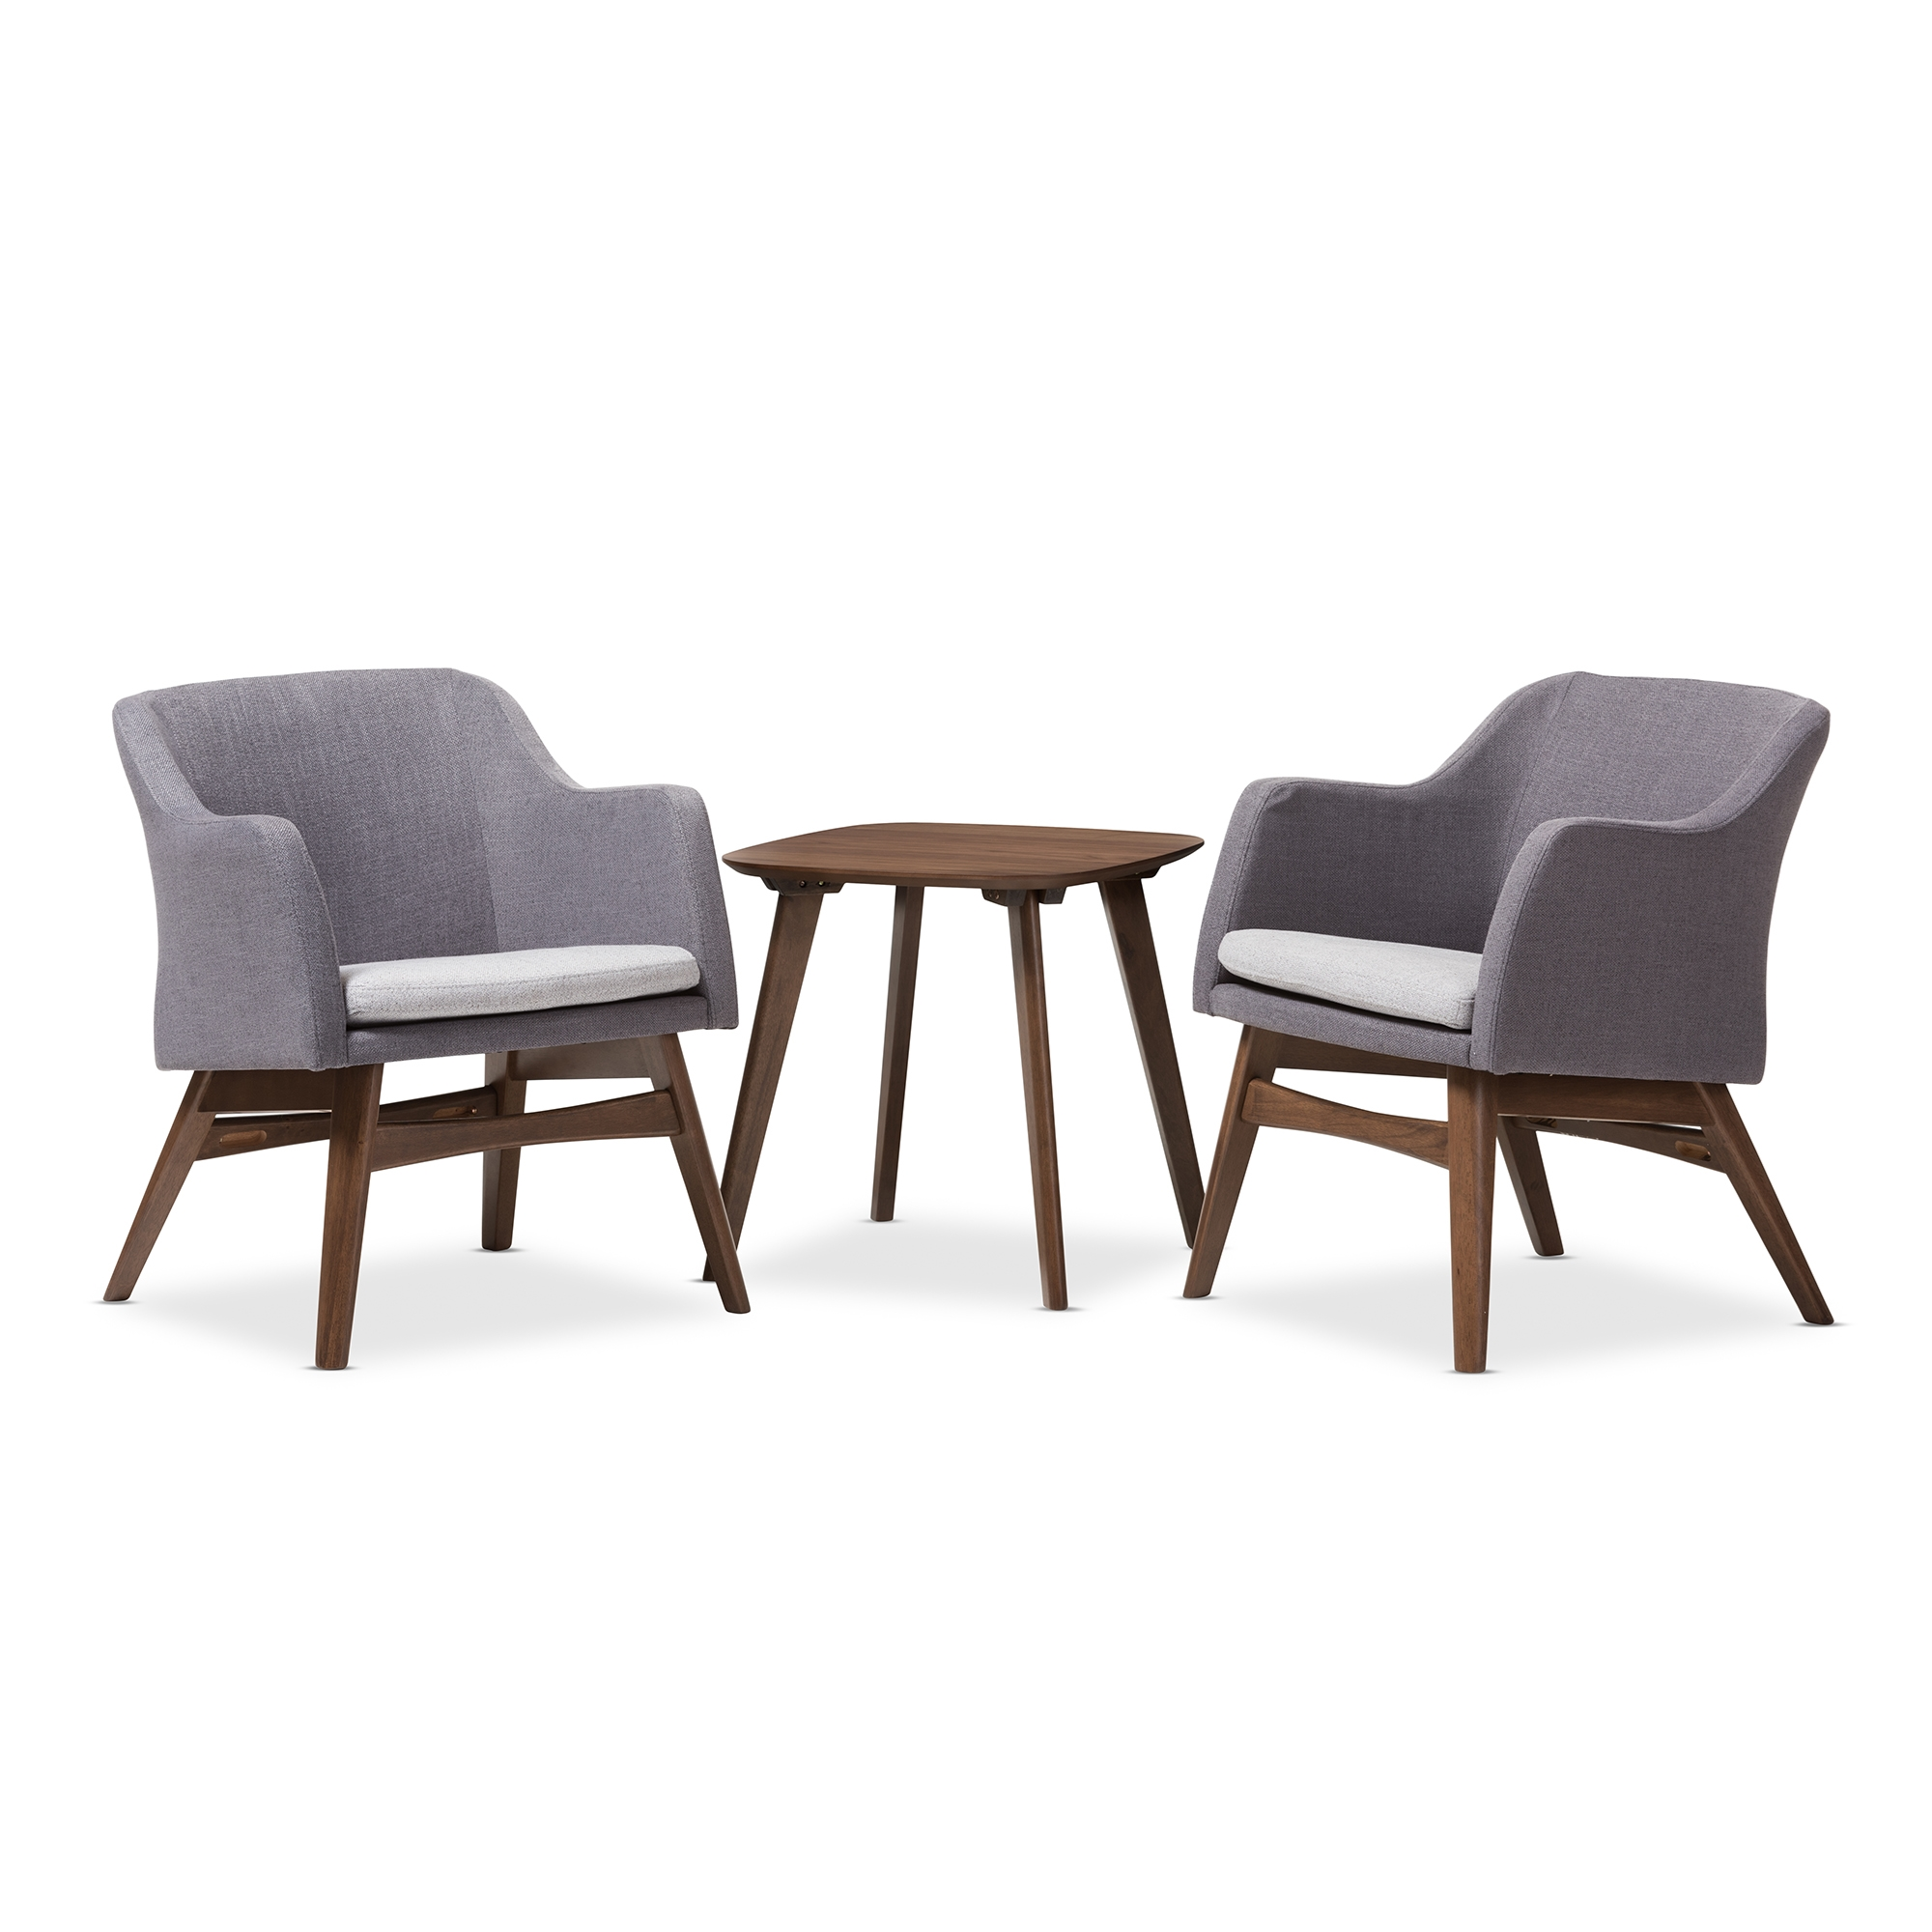 Baxton Studio Vera Mid Century Modern 3 Piece Lounge Chair And Side Table  Set